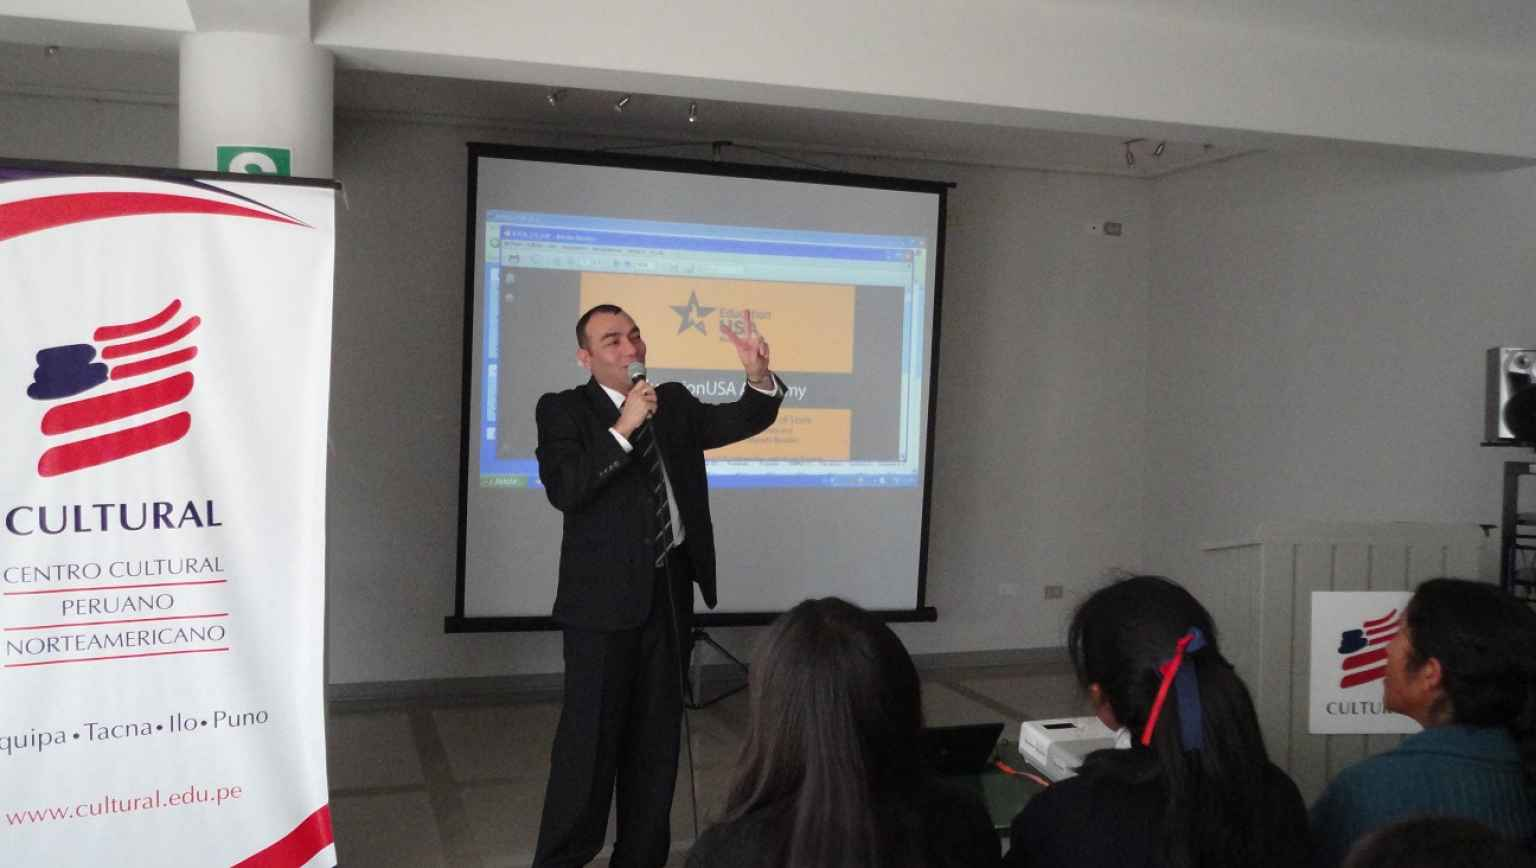 Group presentation on Studying in the US